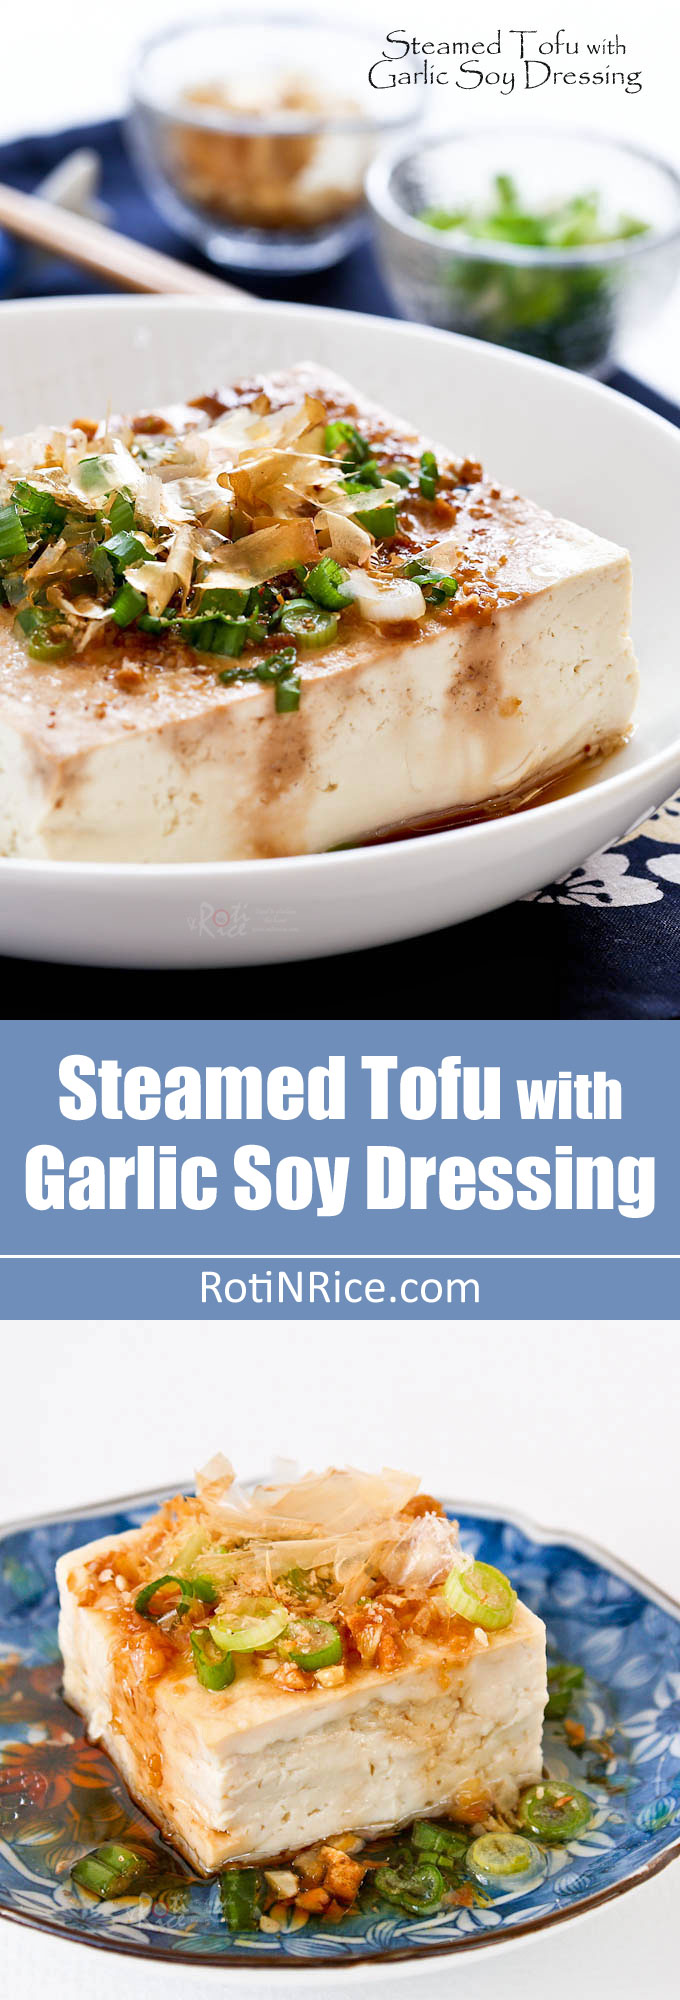 Steamed Tofu with Garlic Soy Dressing - a healthy and delicious side dish to go with rice. Only 12 minutes to prepare using the microwave. | RotiNRice.com